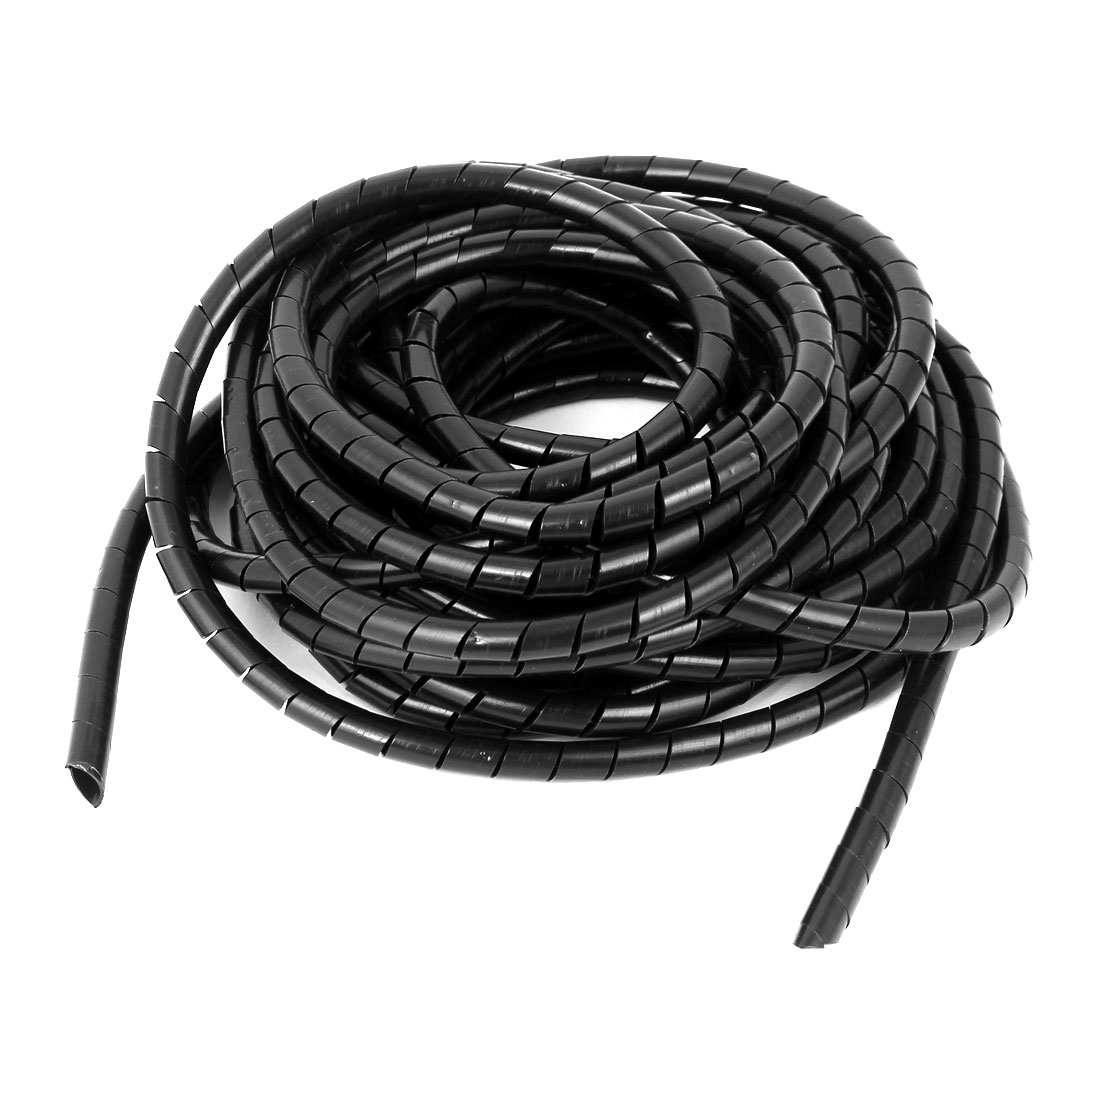 8mm Cable Wire Tidy Spiral Wrapping Band PC Cinema TV Management Organizer 8 Meters